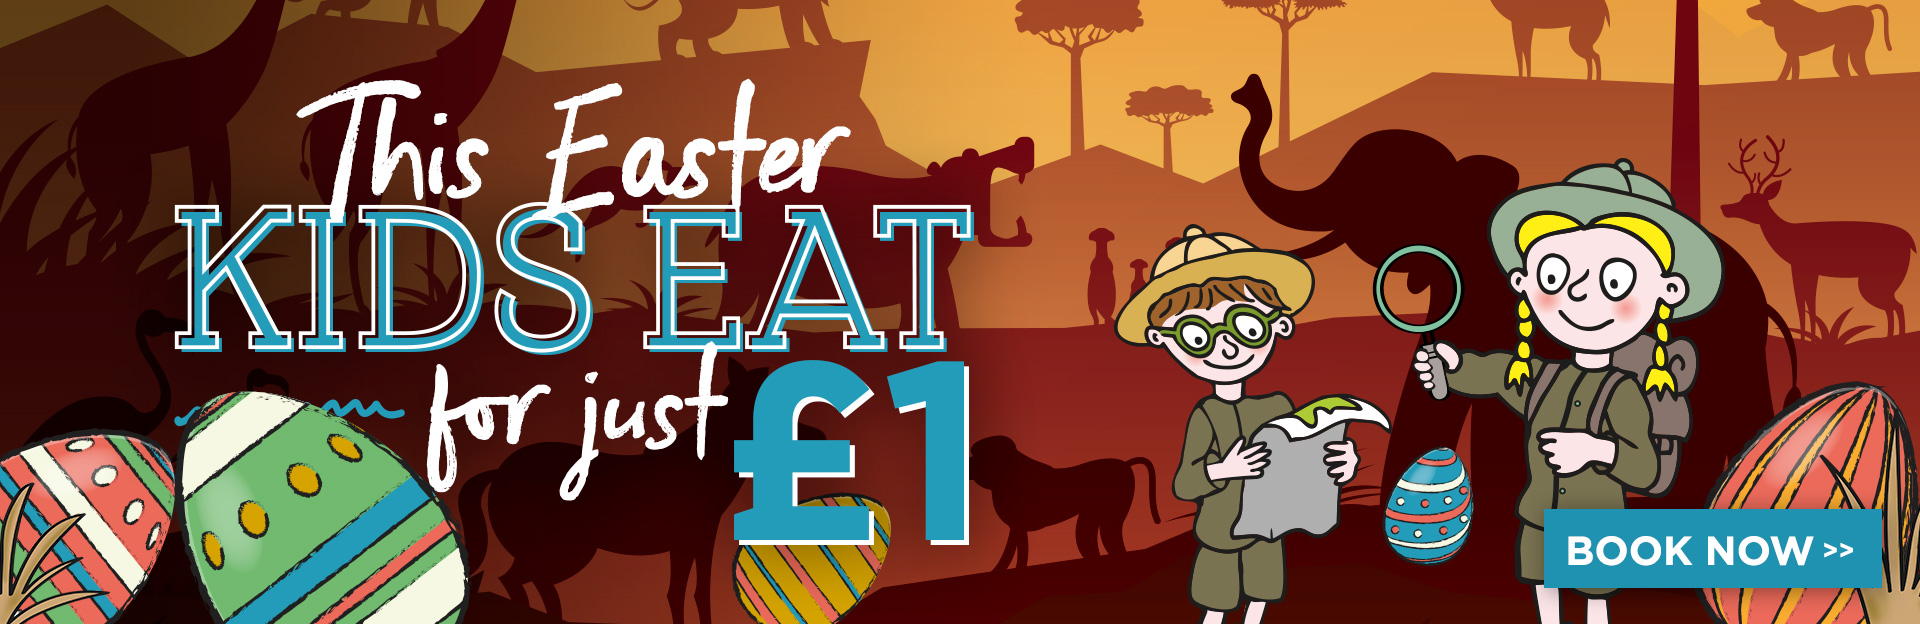 Kids Eat for £1 at The Peartree Bridge Inn